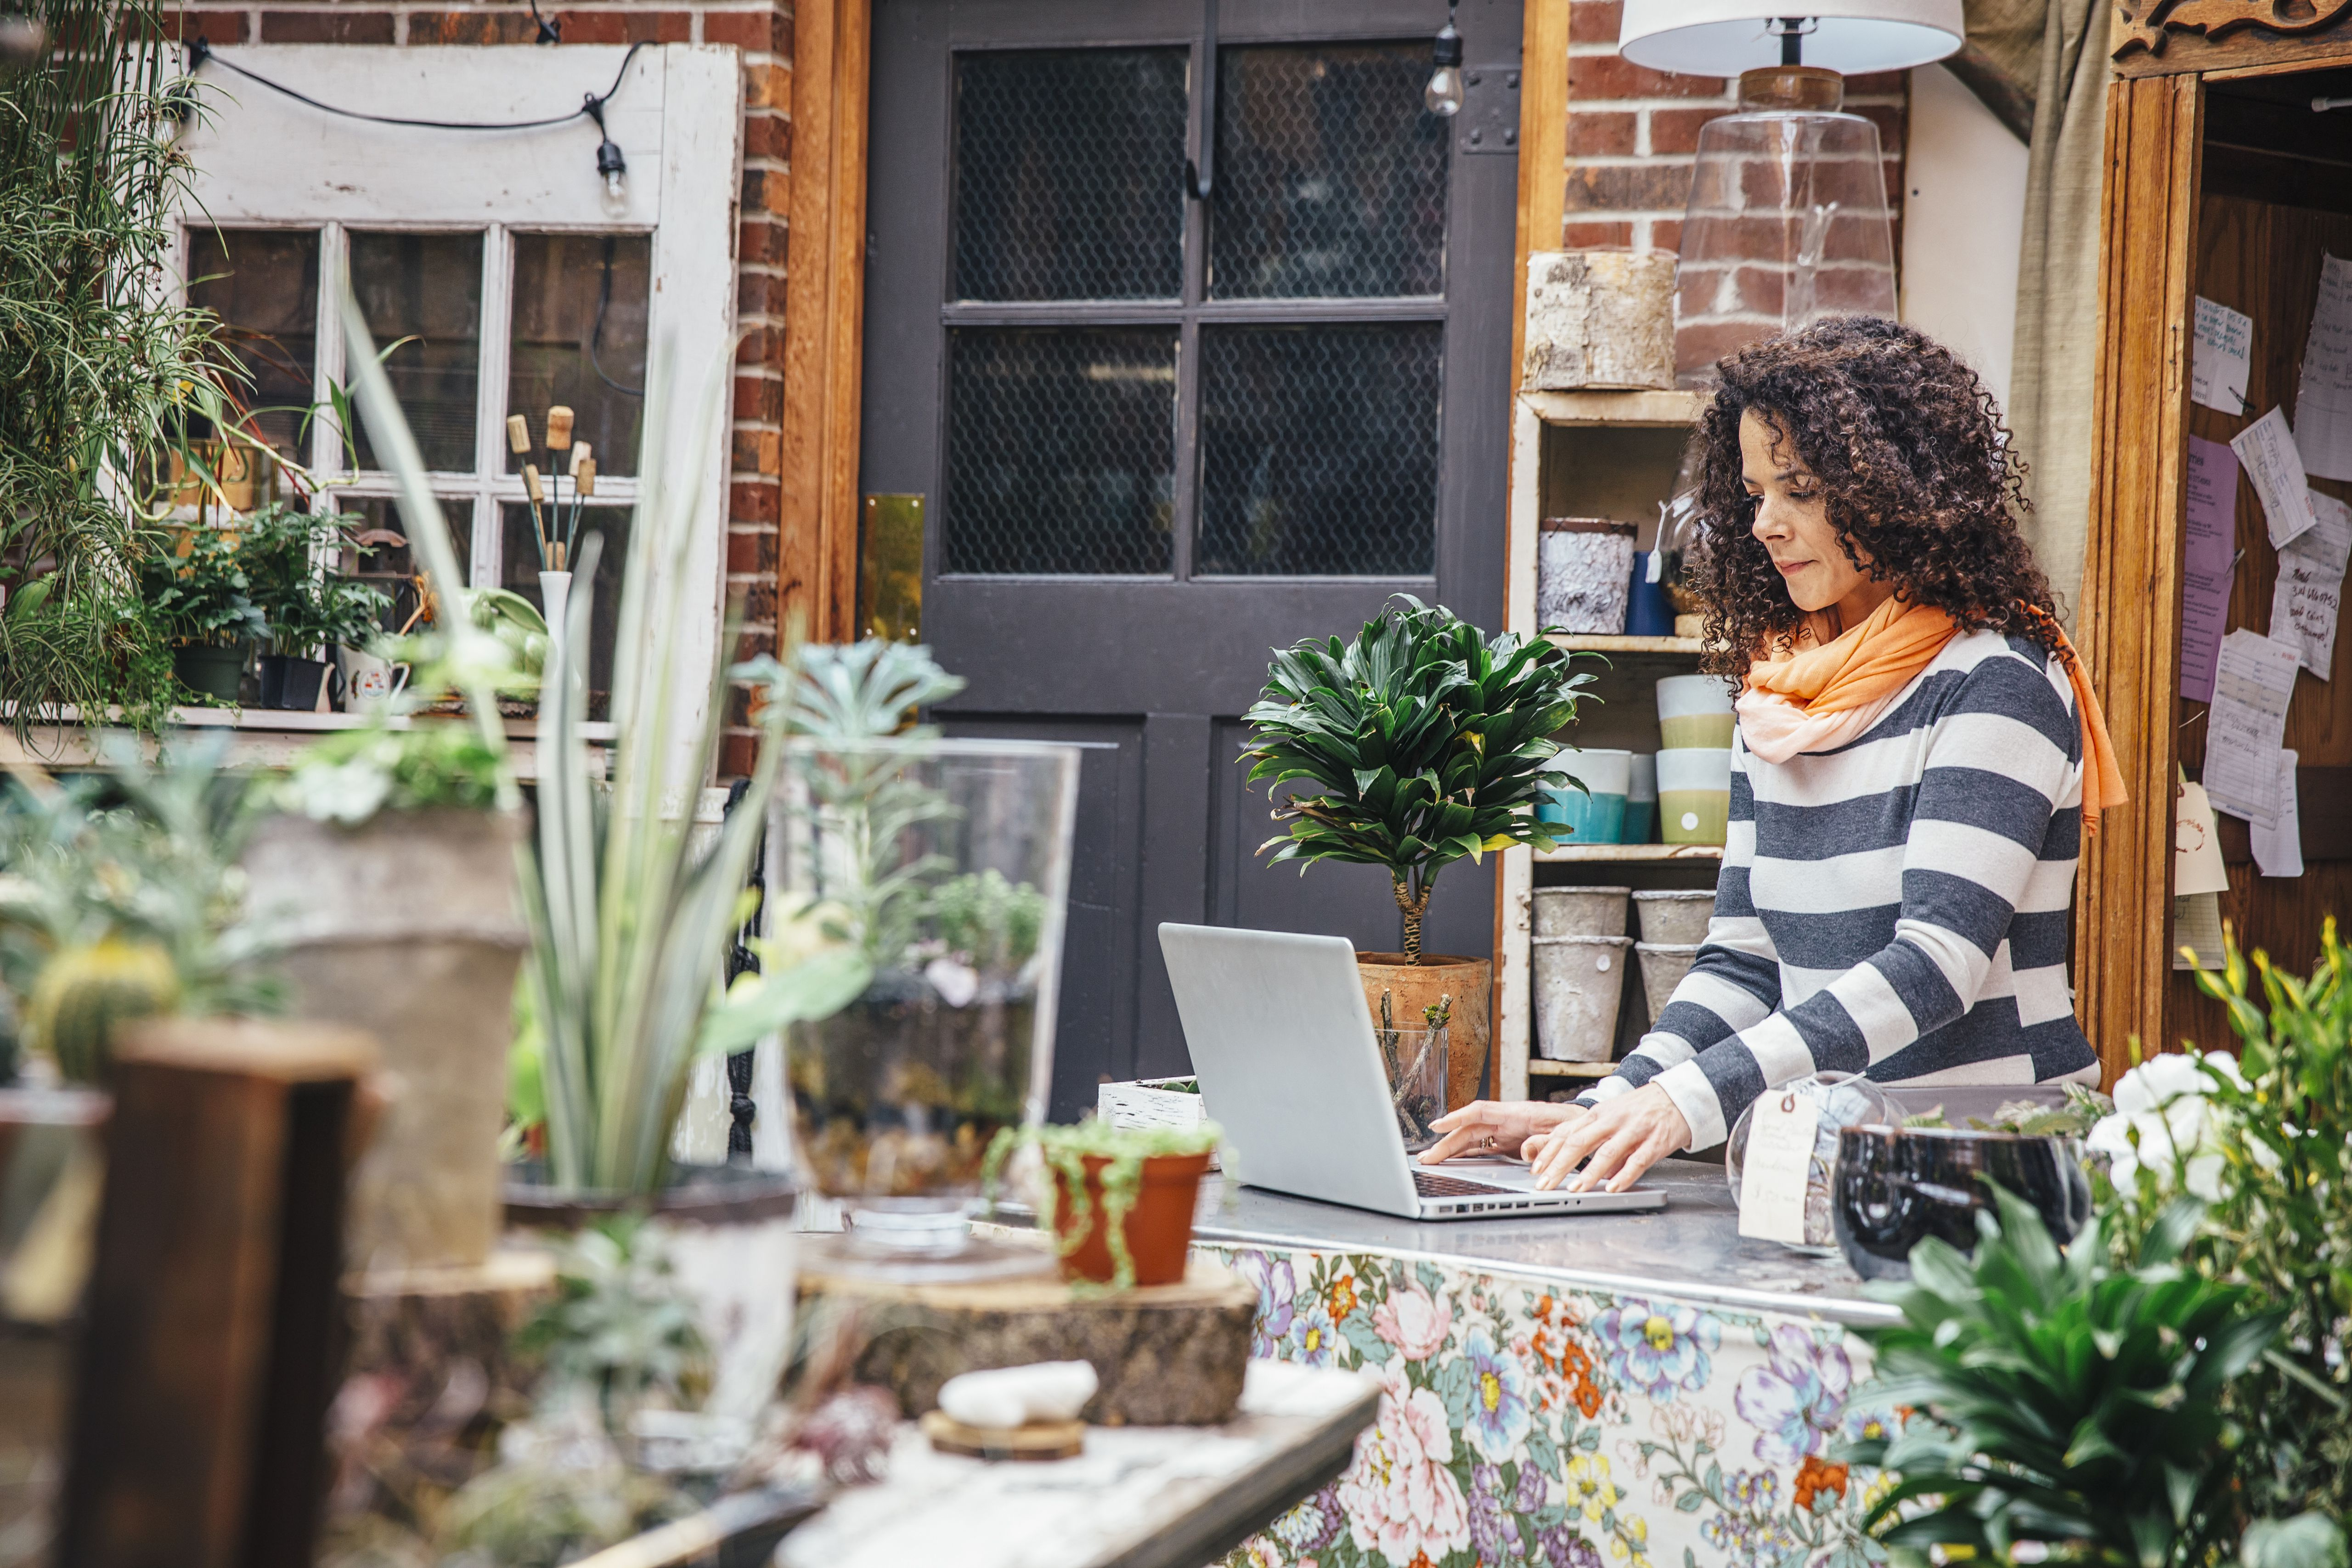 Woman on computer surrounded by plants